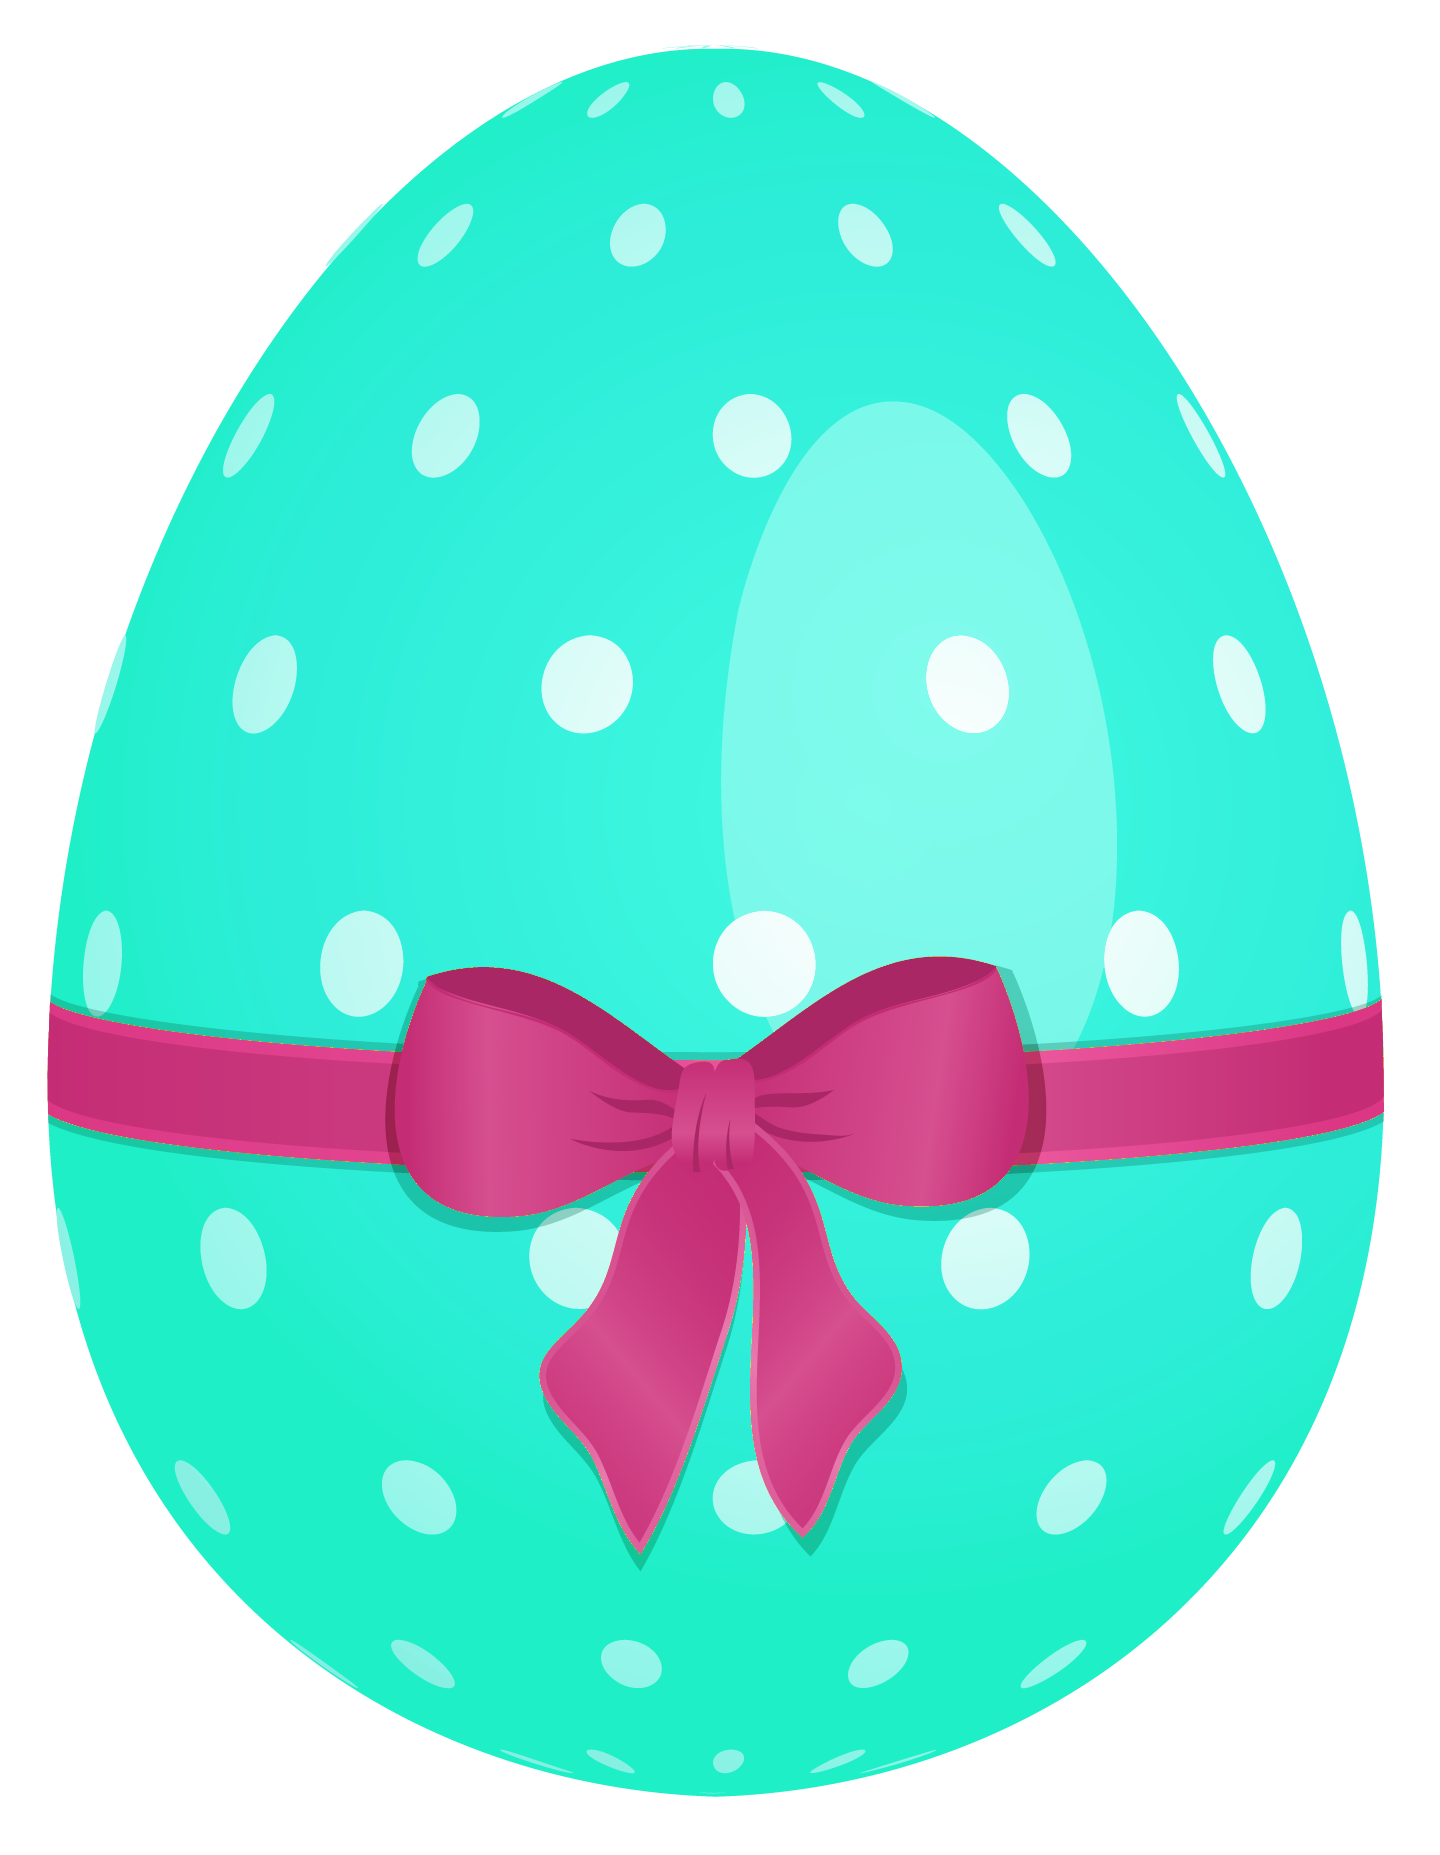 Easter egg clip art images picture download Easter Egg Clipart Sky blue easter egg | Easter clip | Pinterest ... picture download